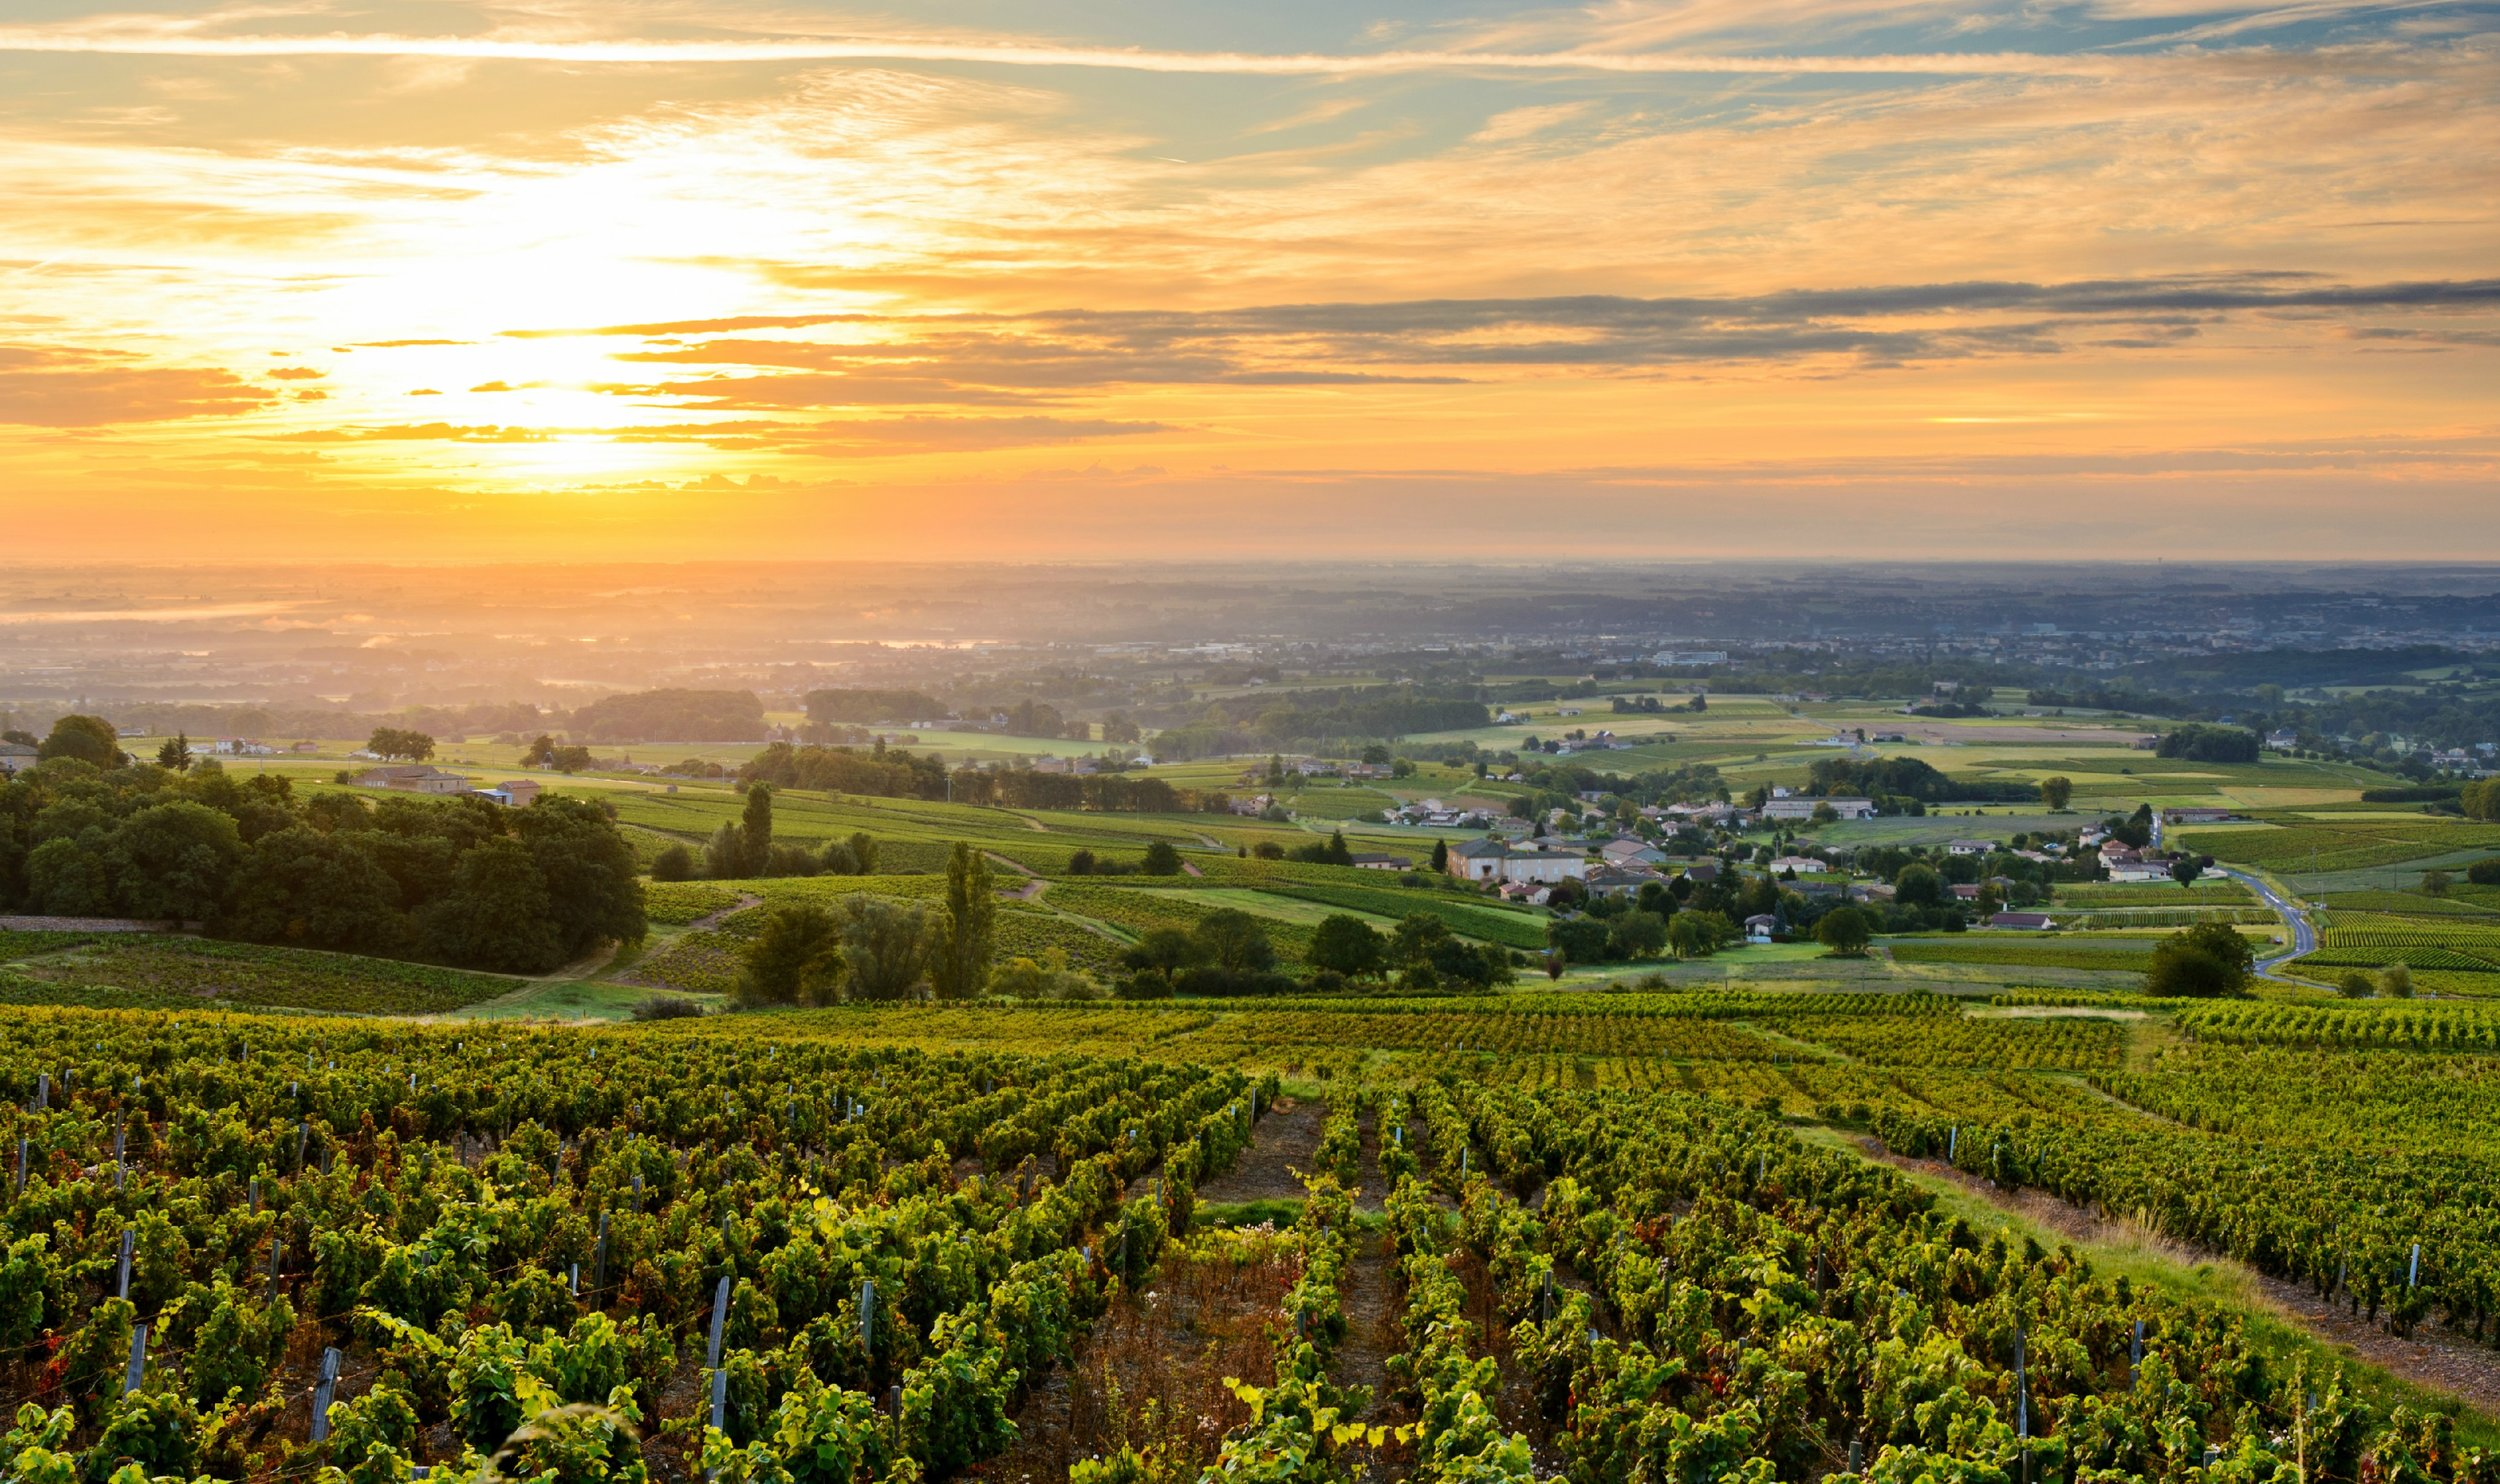 Beaujolais_Valley_sunset.jpeg